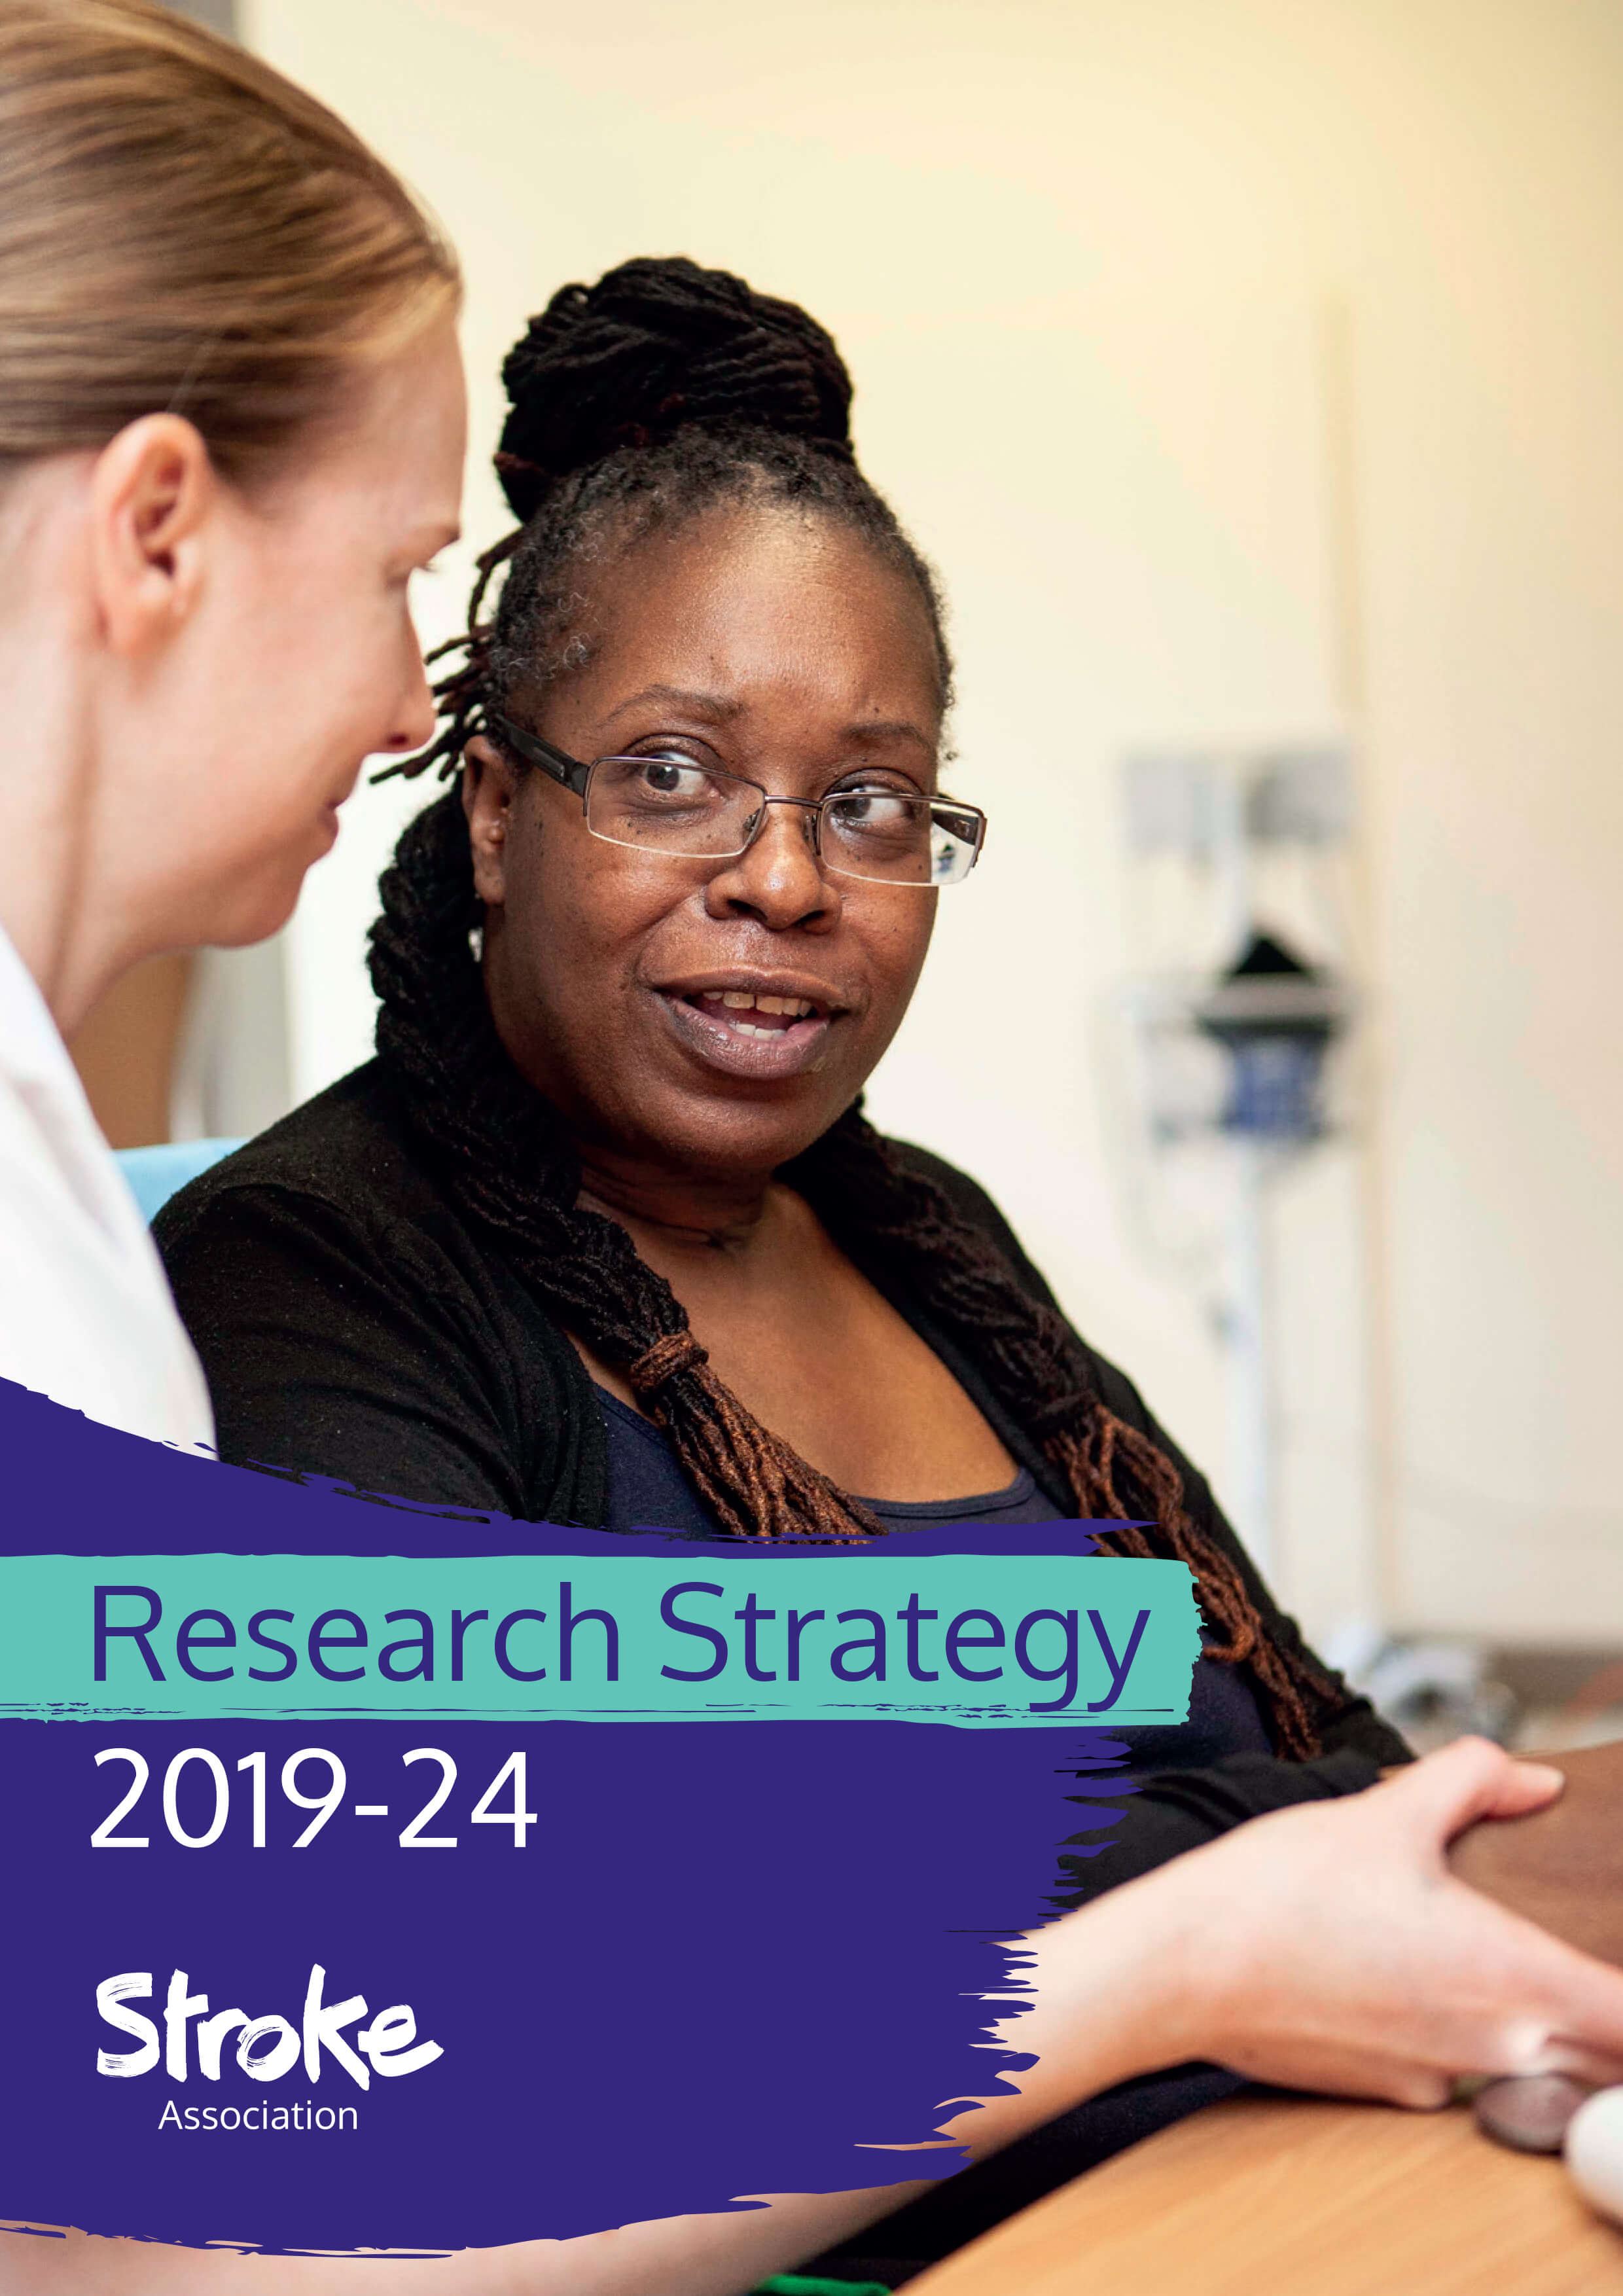 Research Strategy 2019 to 2024, Stroke Association